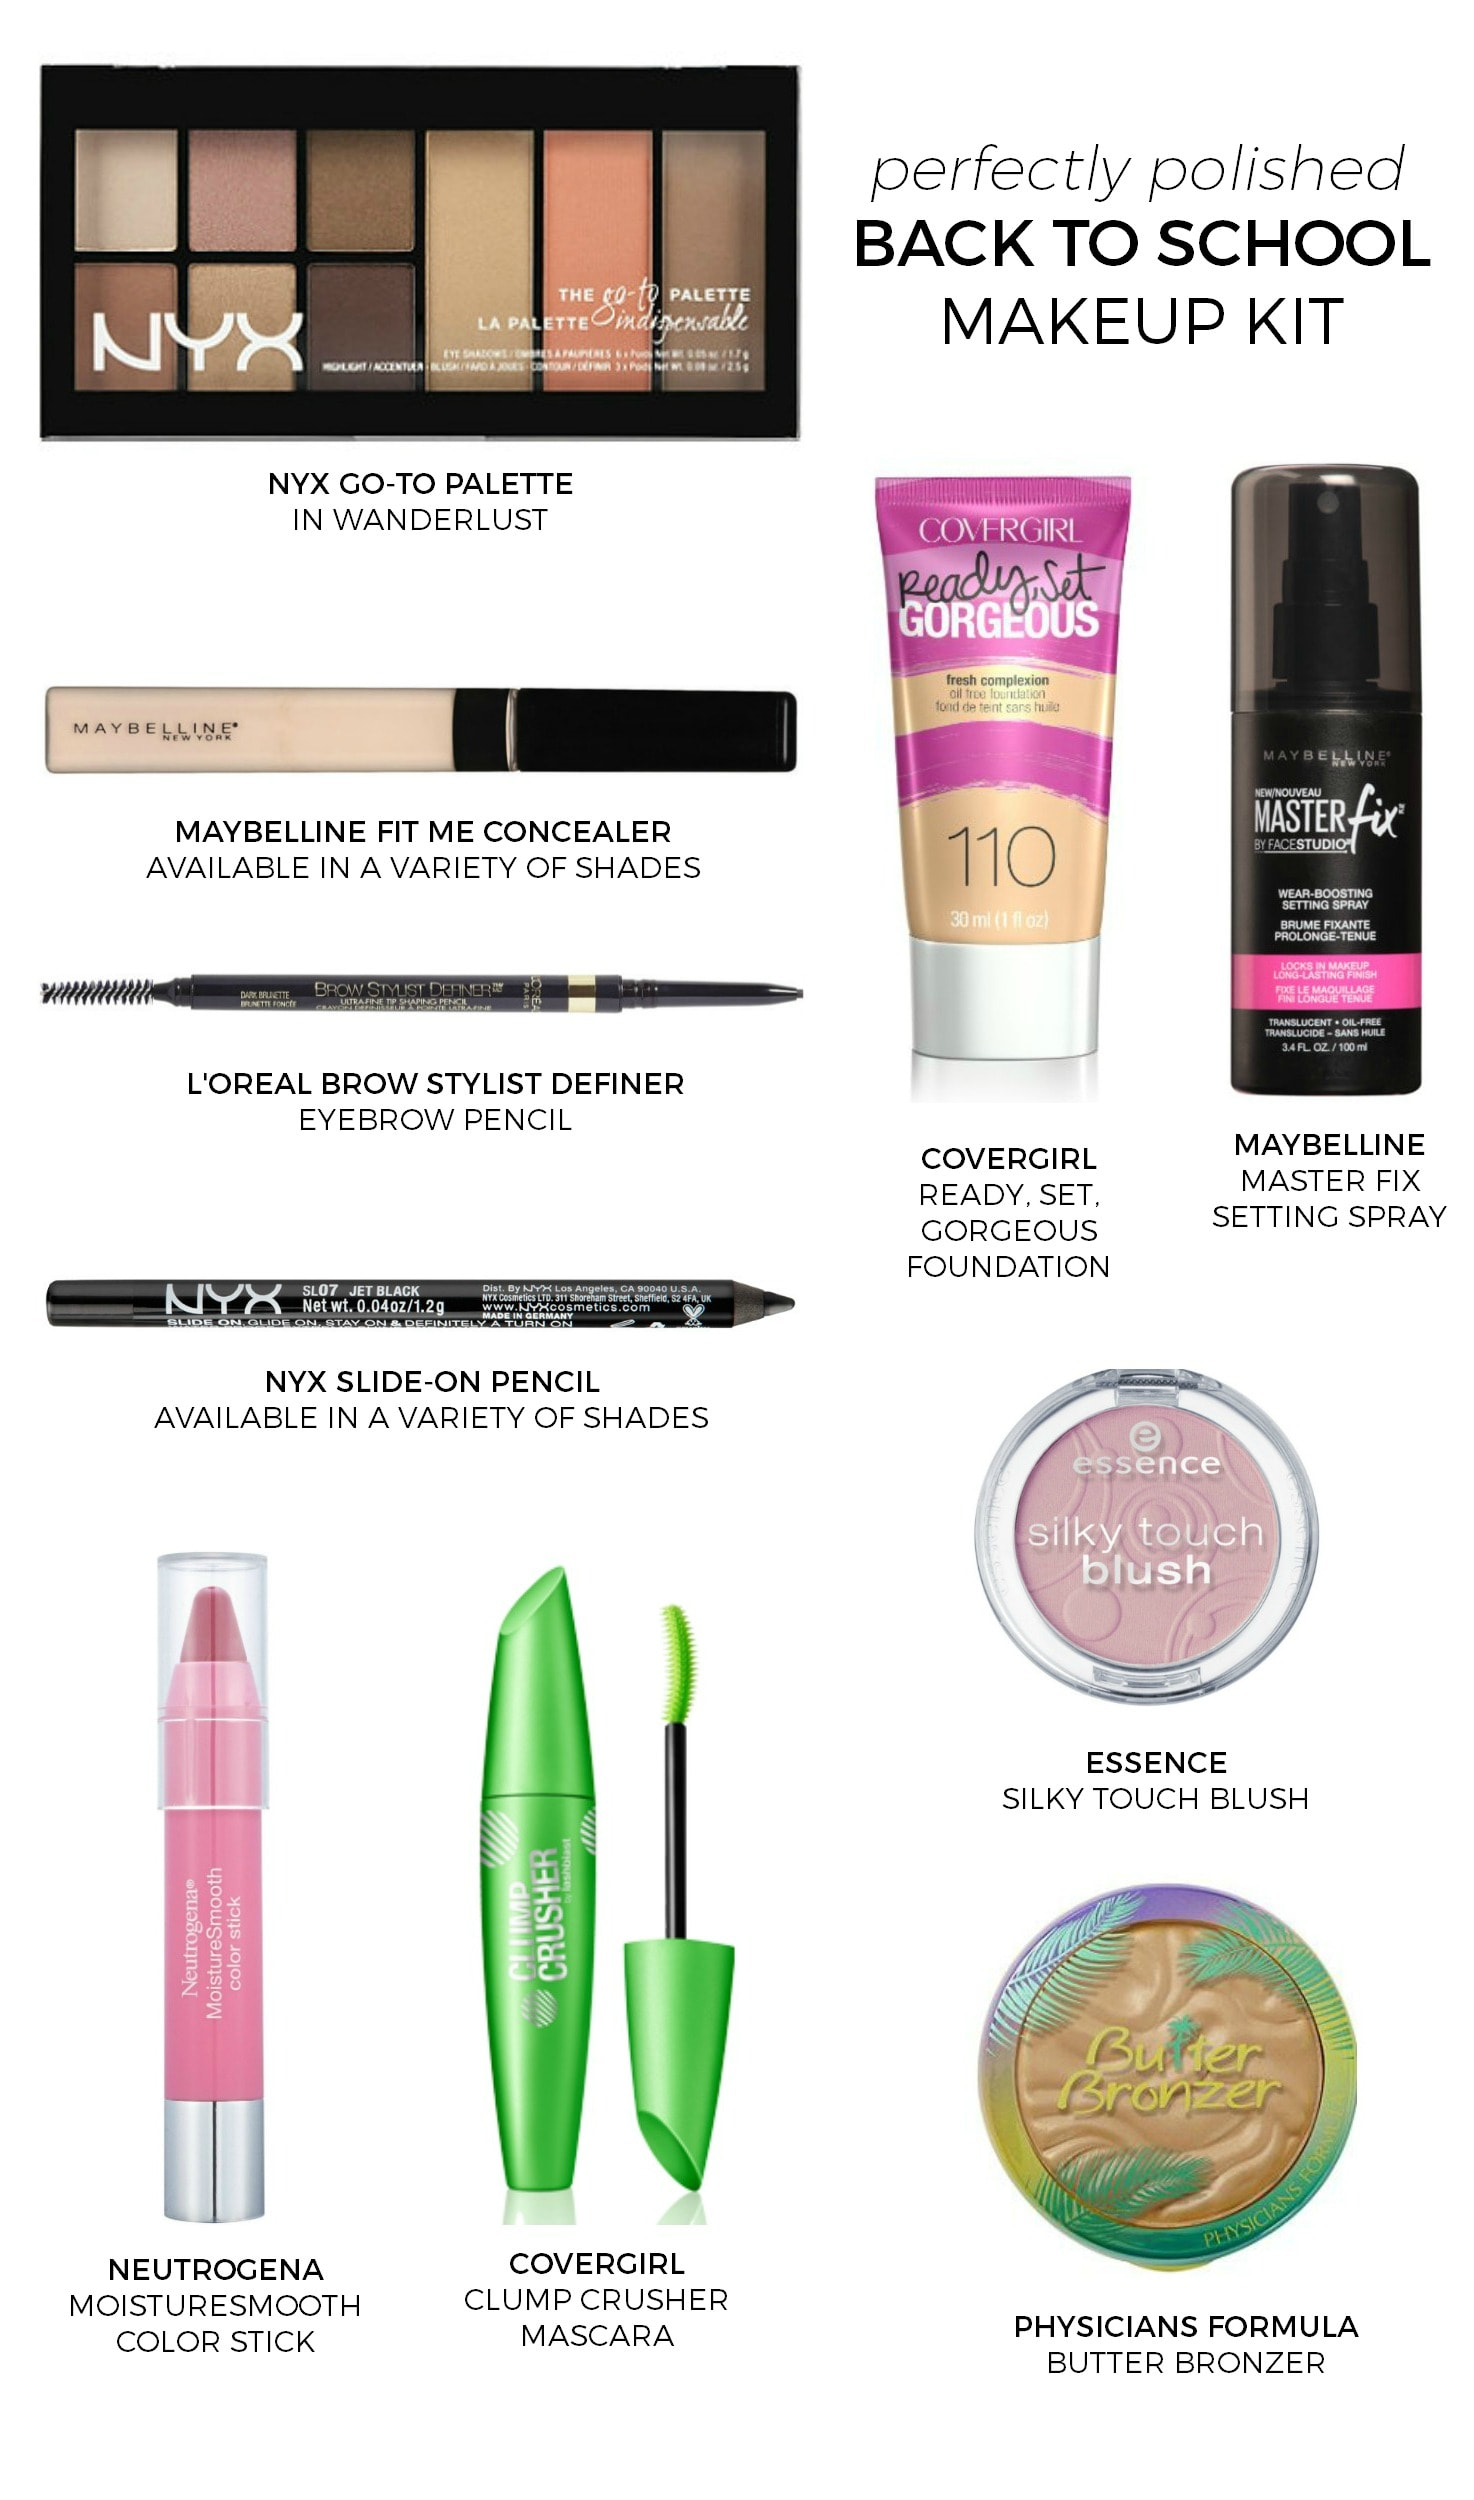 perfectly-polished-back-to-school-makeup-kit-drugstore-makeup